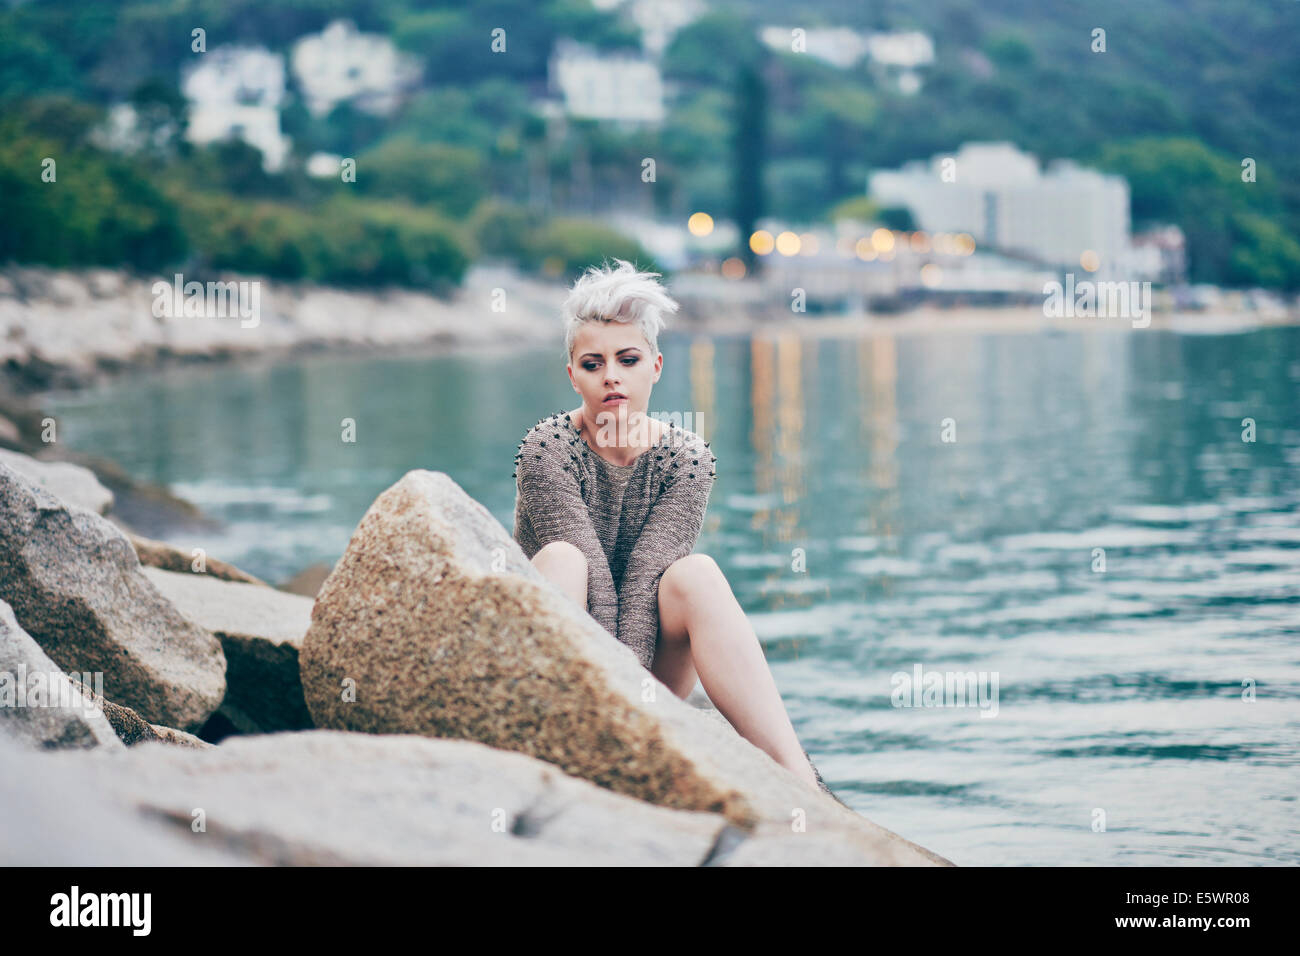 Young woman sitting alone on harbor rocks - Stock Image